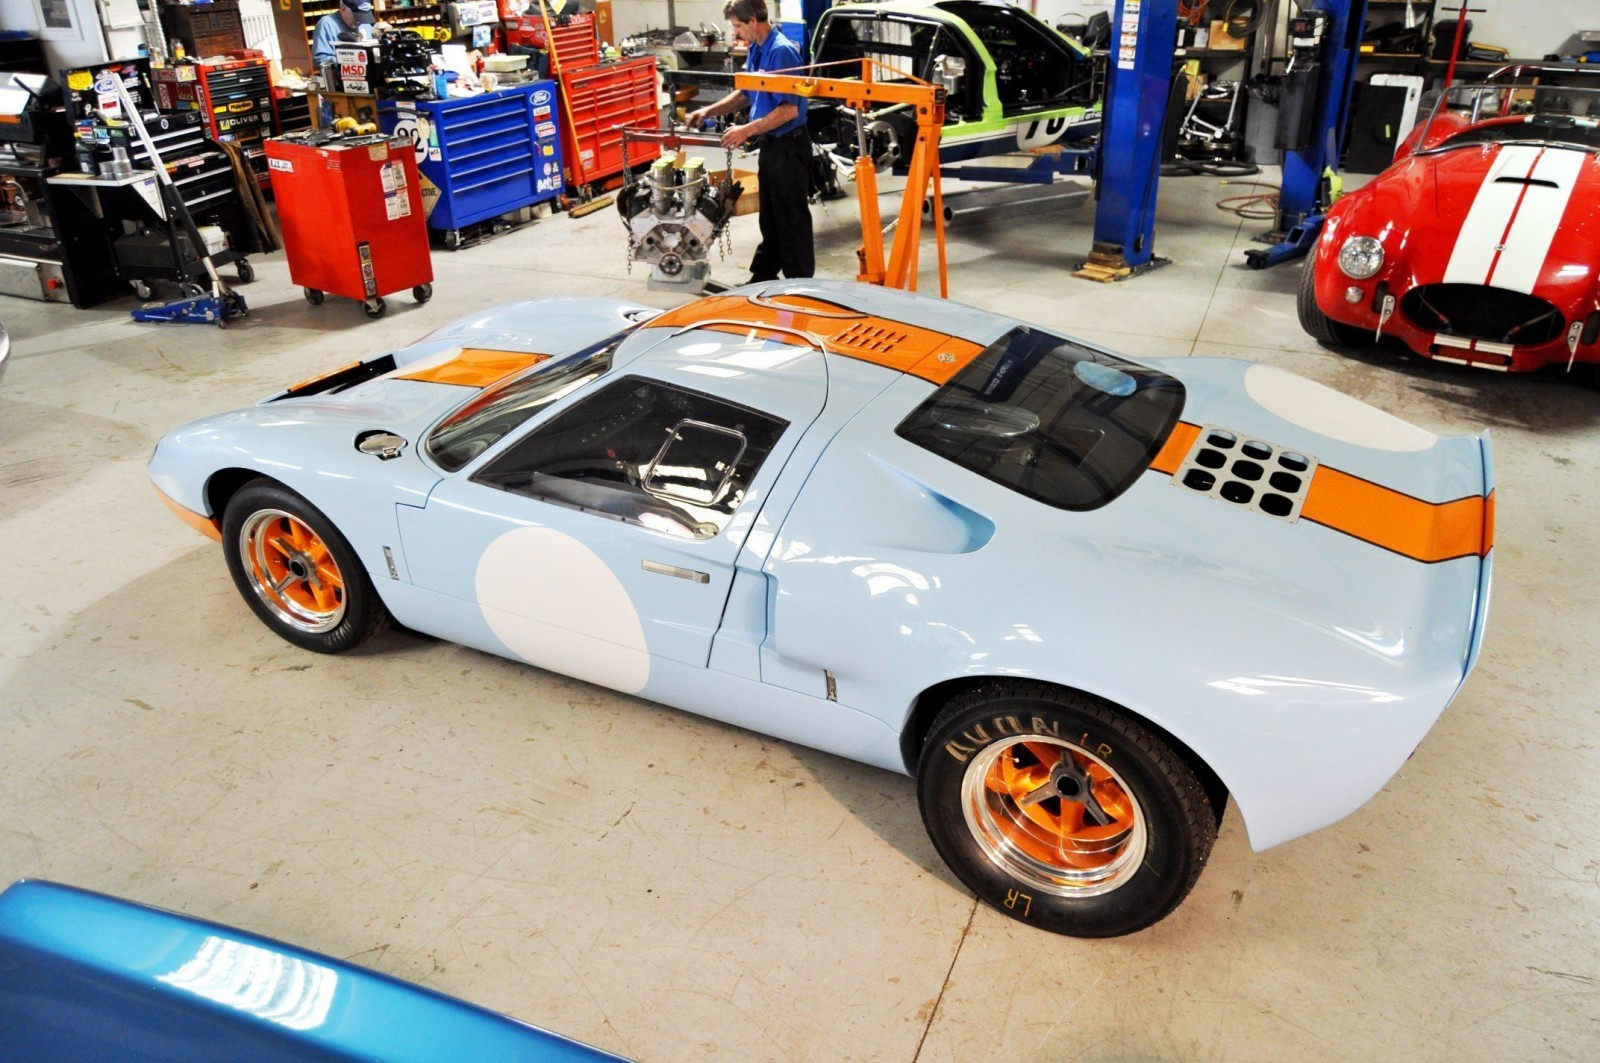 2014 Superformance GT40 Mark I - MEGA Photo Shoot and Ride-Along Videos 38